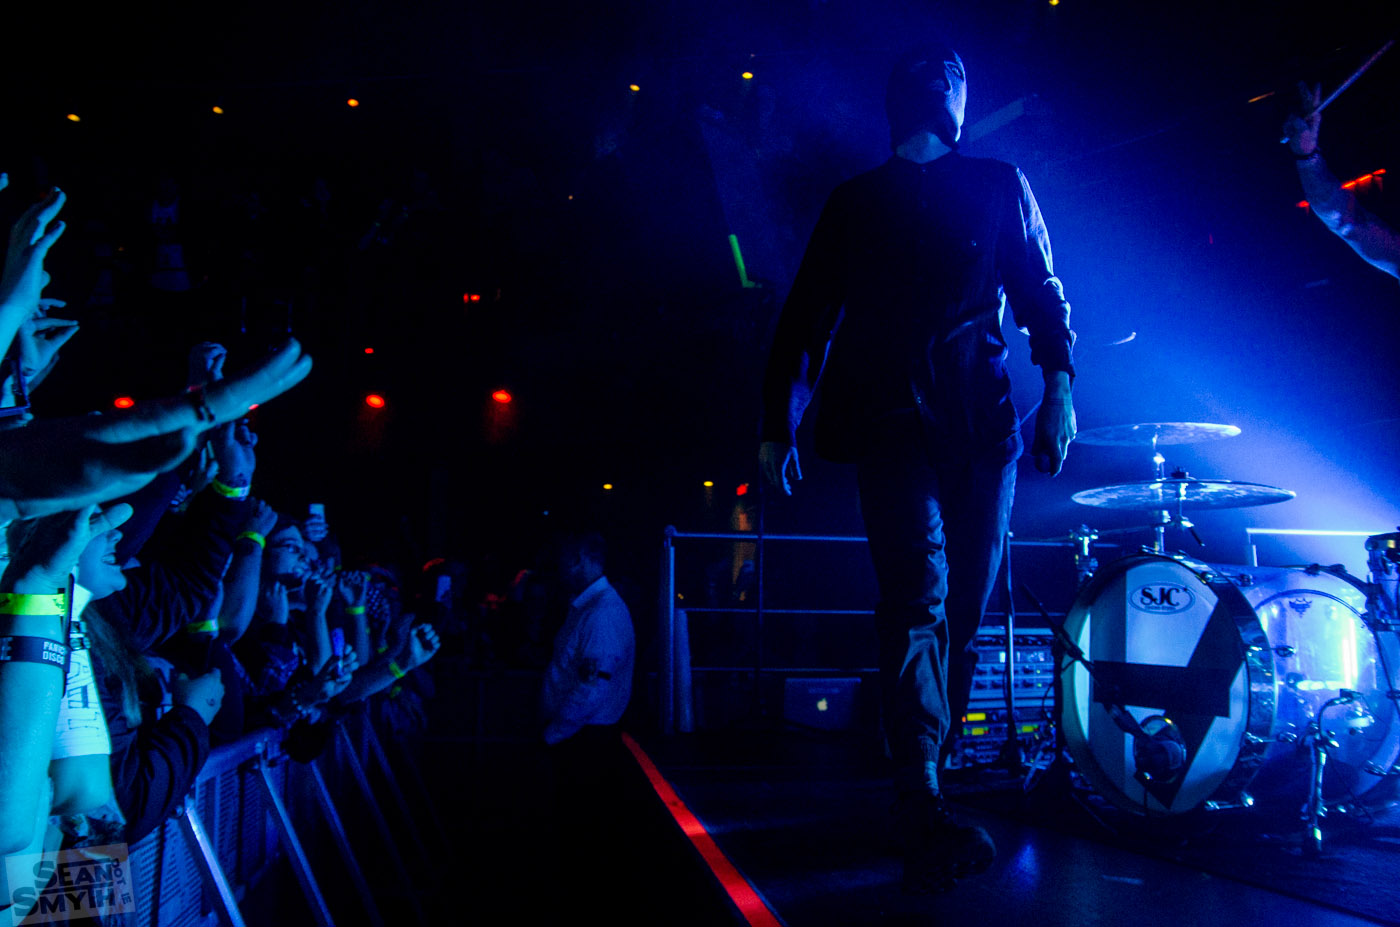 twenty-one-pilots-at-the-academy-by-sean-smyth-16-11-14-20-of-41_15806815935_o